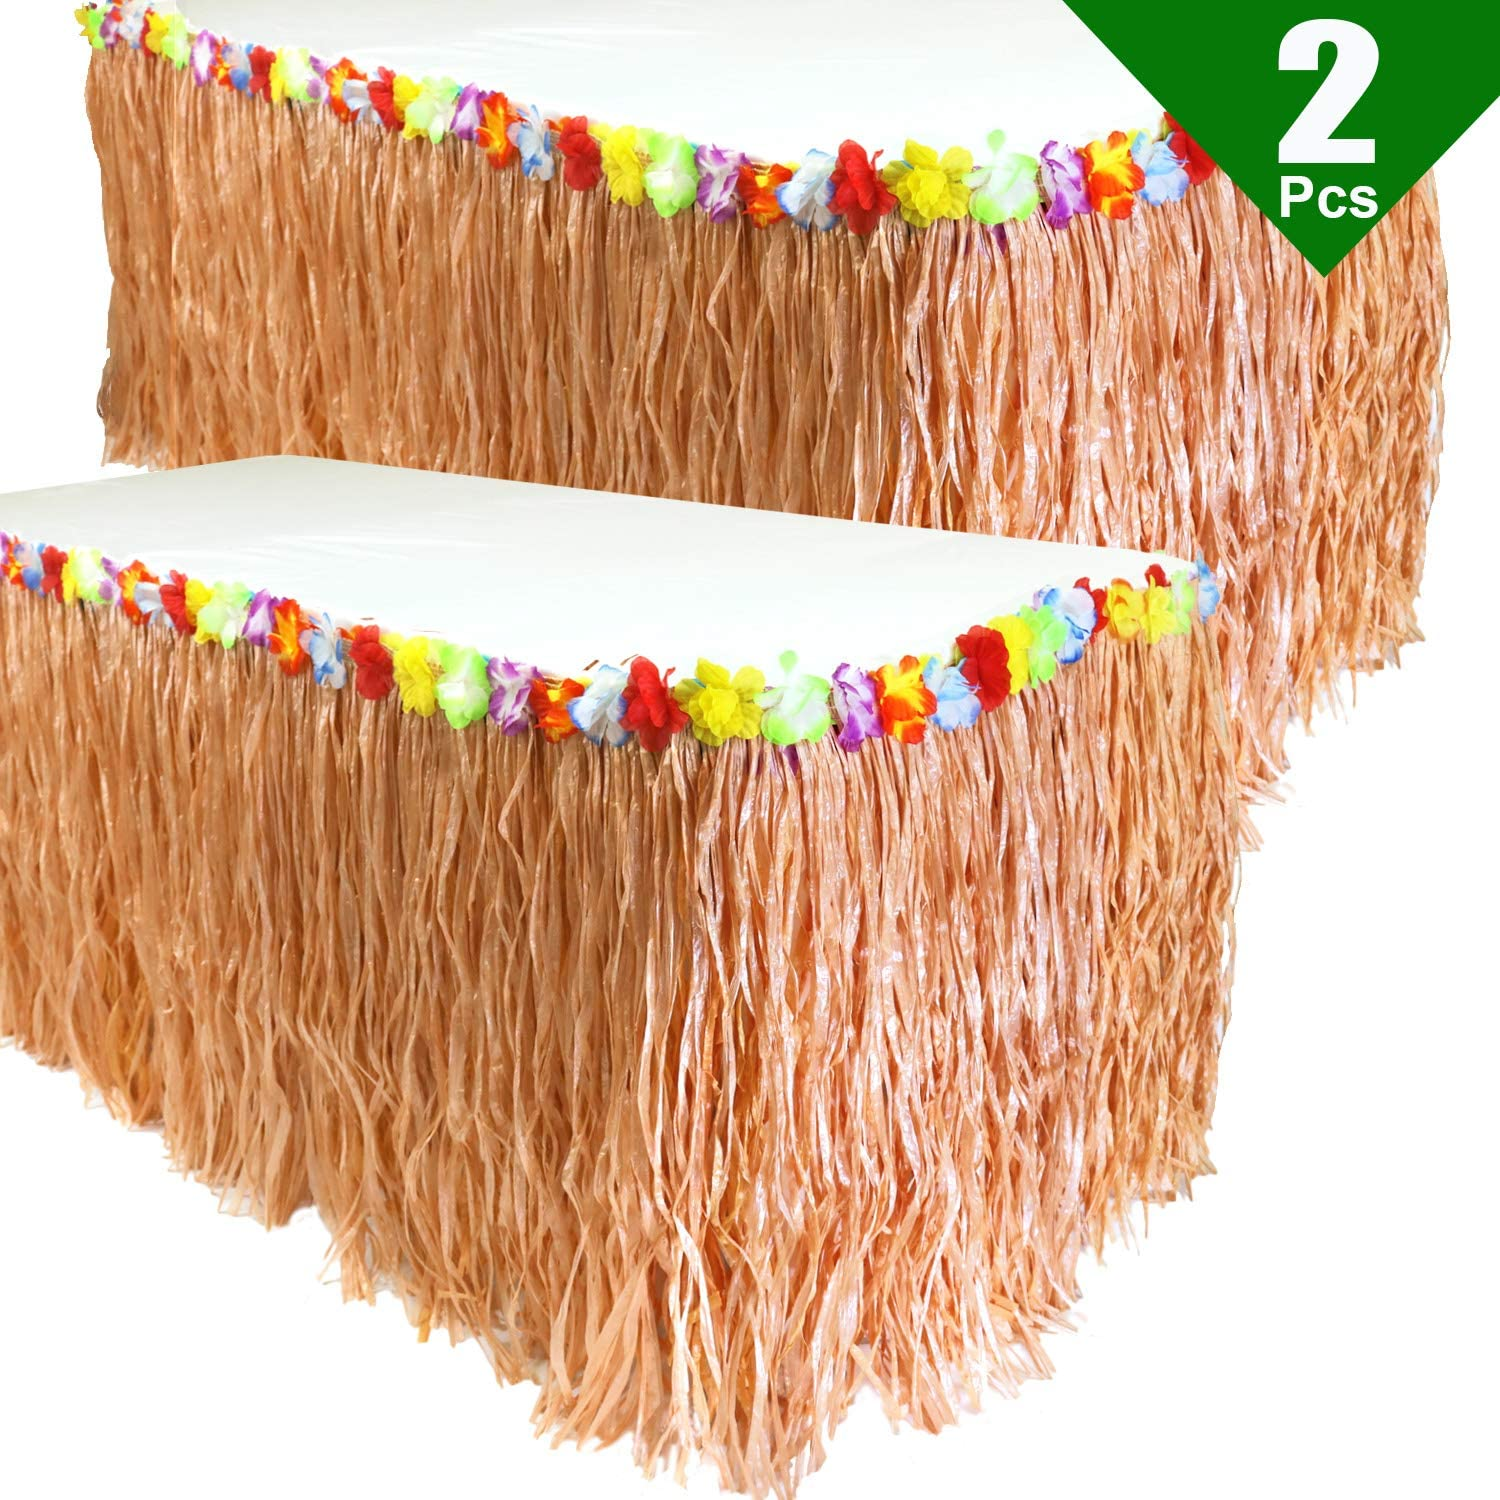 GiftExpress Pack of 2, 9 feet X29 Luau Grass Table Skirt, Hawaiian Luau Libiscus Table Skirt for Hawaiian Party, Luau Party Supplies, Luau Party Decorations, Moana Birthday Party (Natural Hay Grass)